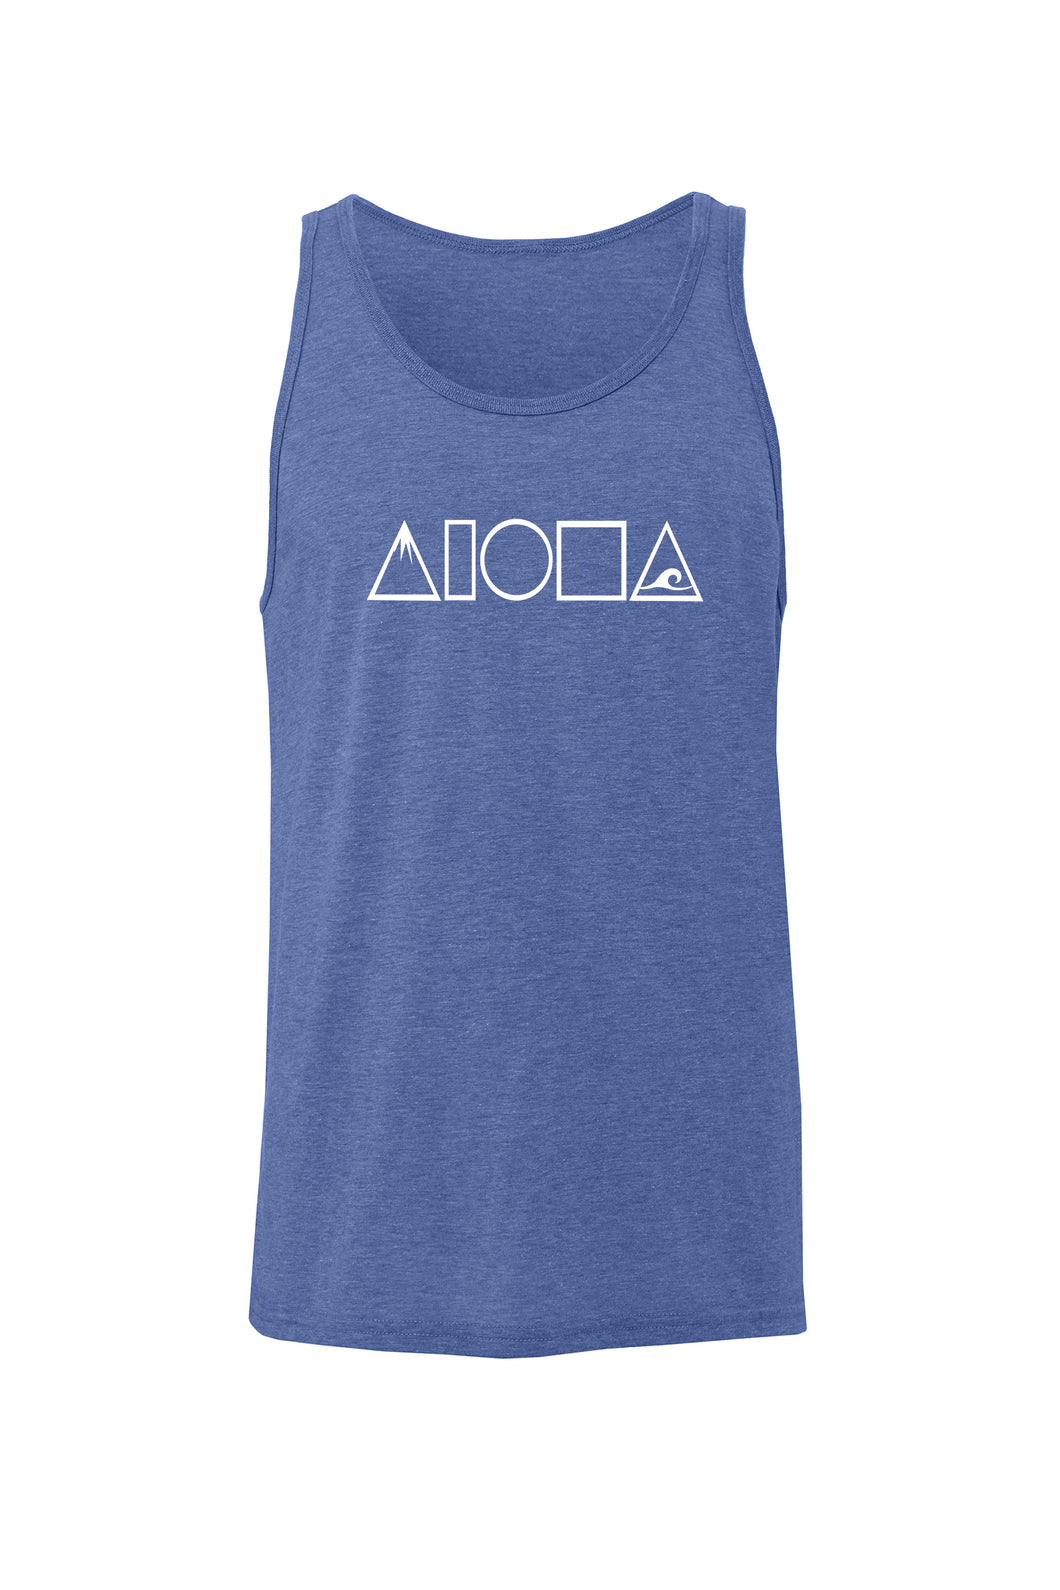 Heather blue unisex triblend tank top printed on front chest with white Mauka to Makai Aloha Shapes logo